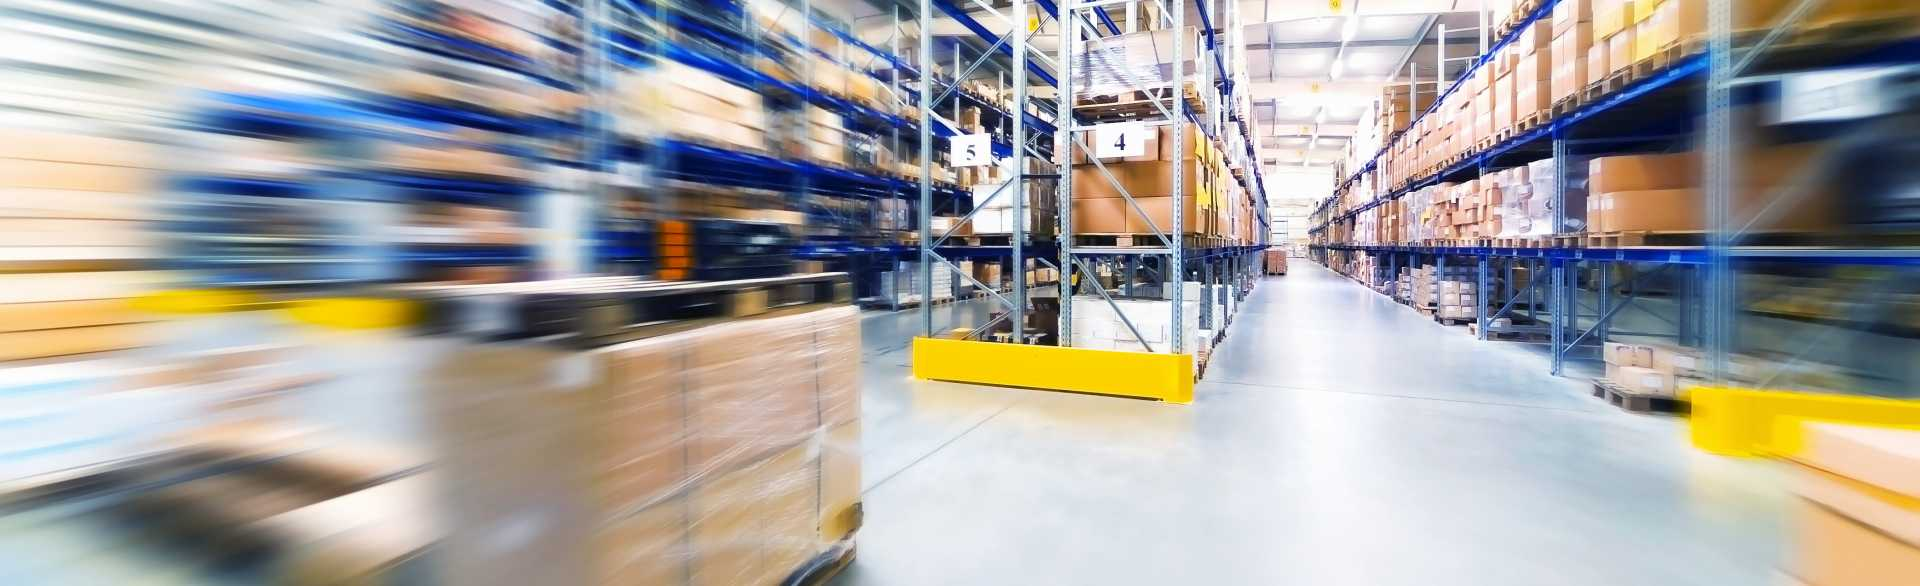 shutterstock warehouse logsitics forklift supply chain